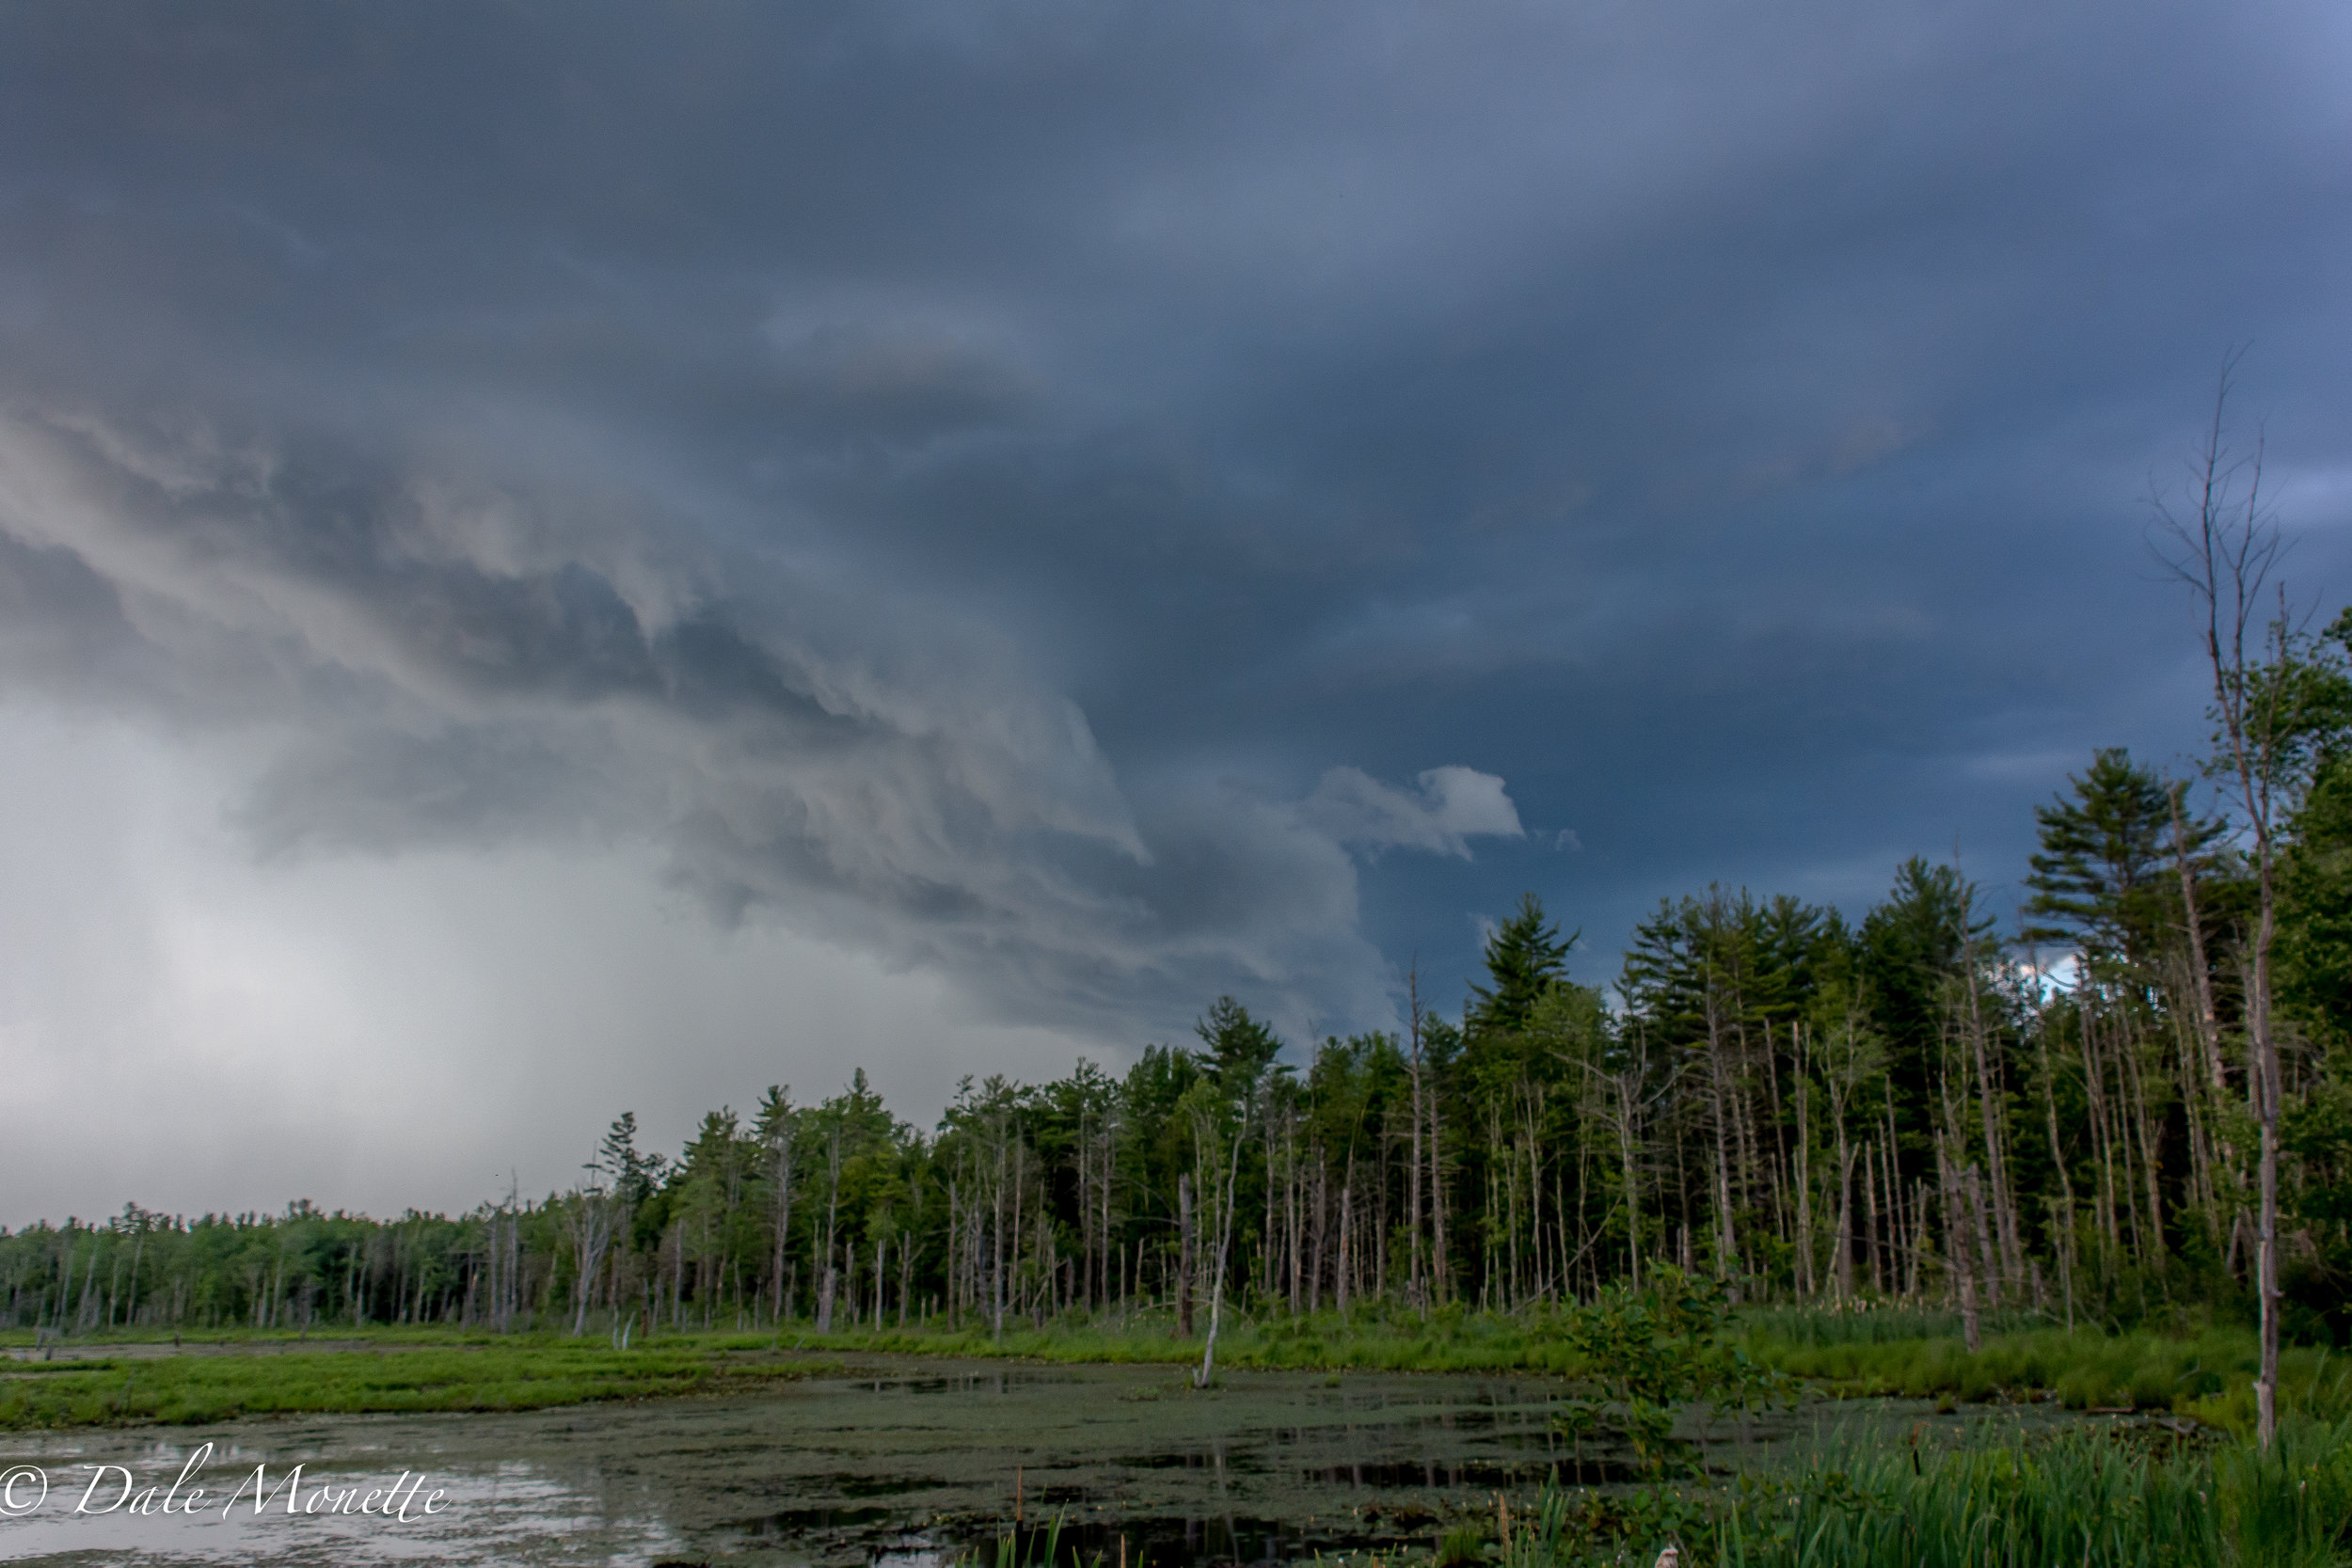 North Orange Wildlife management area about an hour ago (6:45PM) this thunder storm built up right in front of us as we were watching herons...... 6/25/17